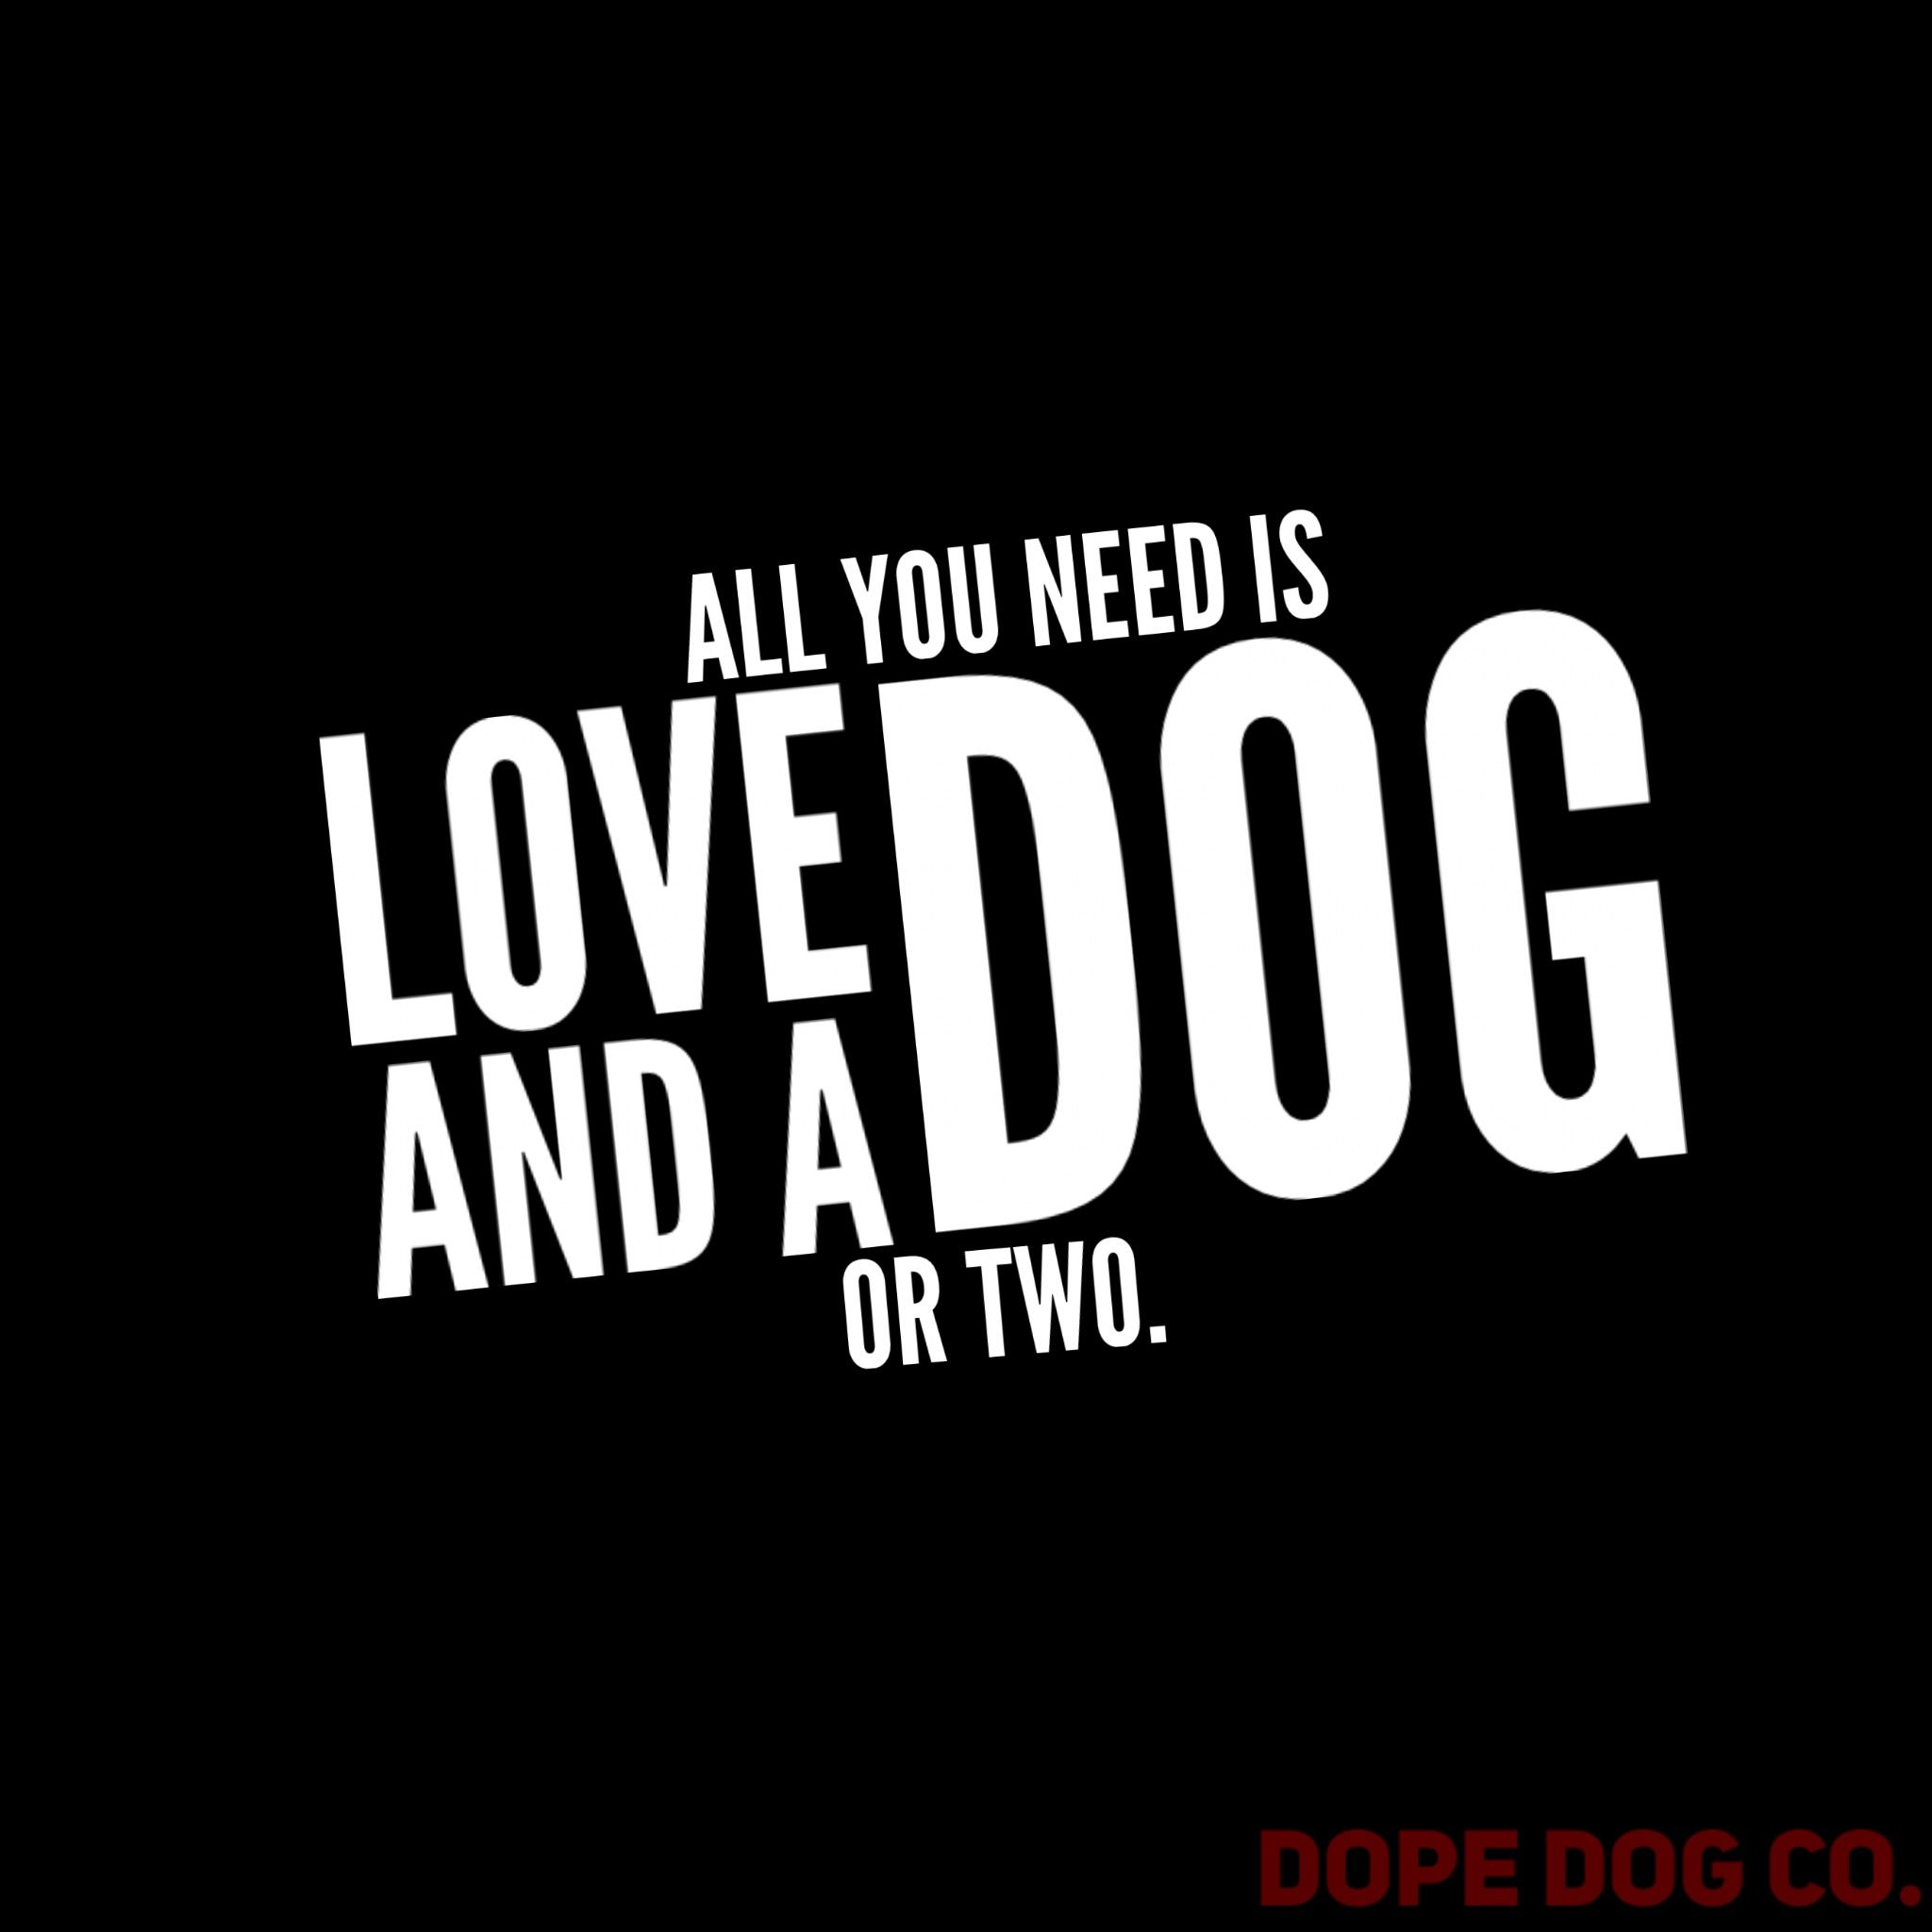 sounds about right 🐶♥️🐶  #dopedogco #dopedog